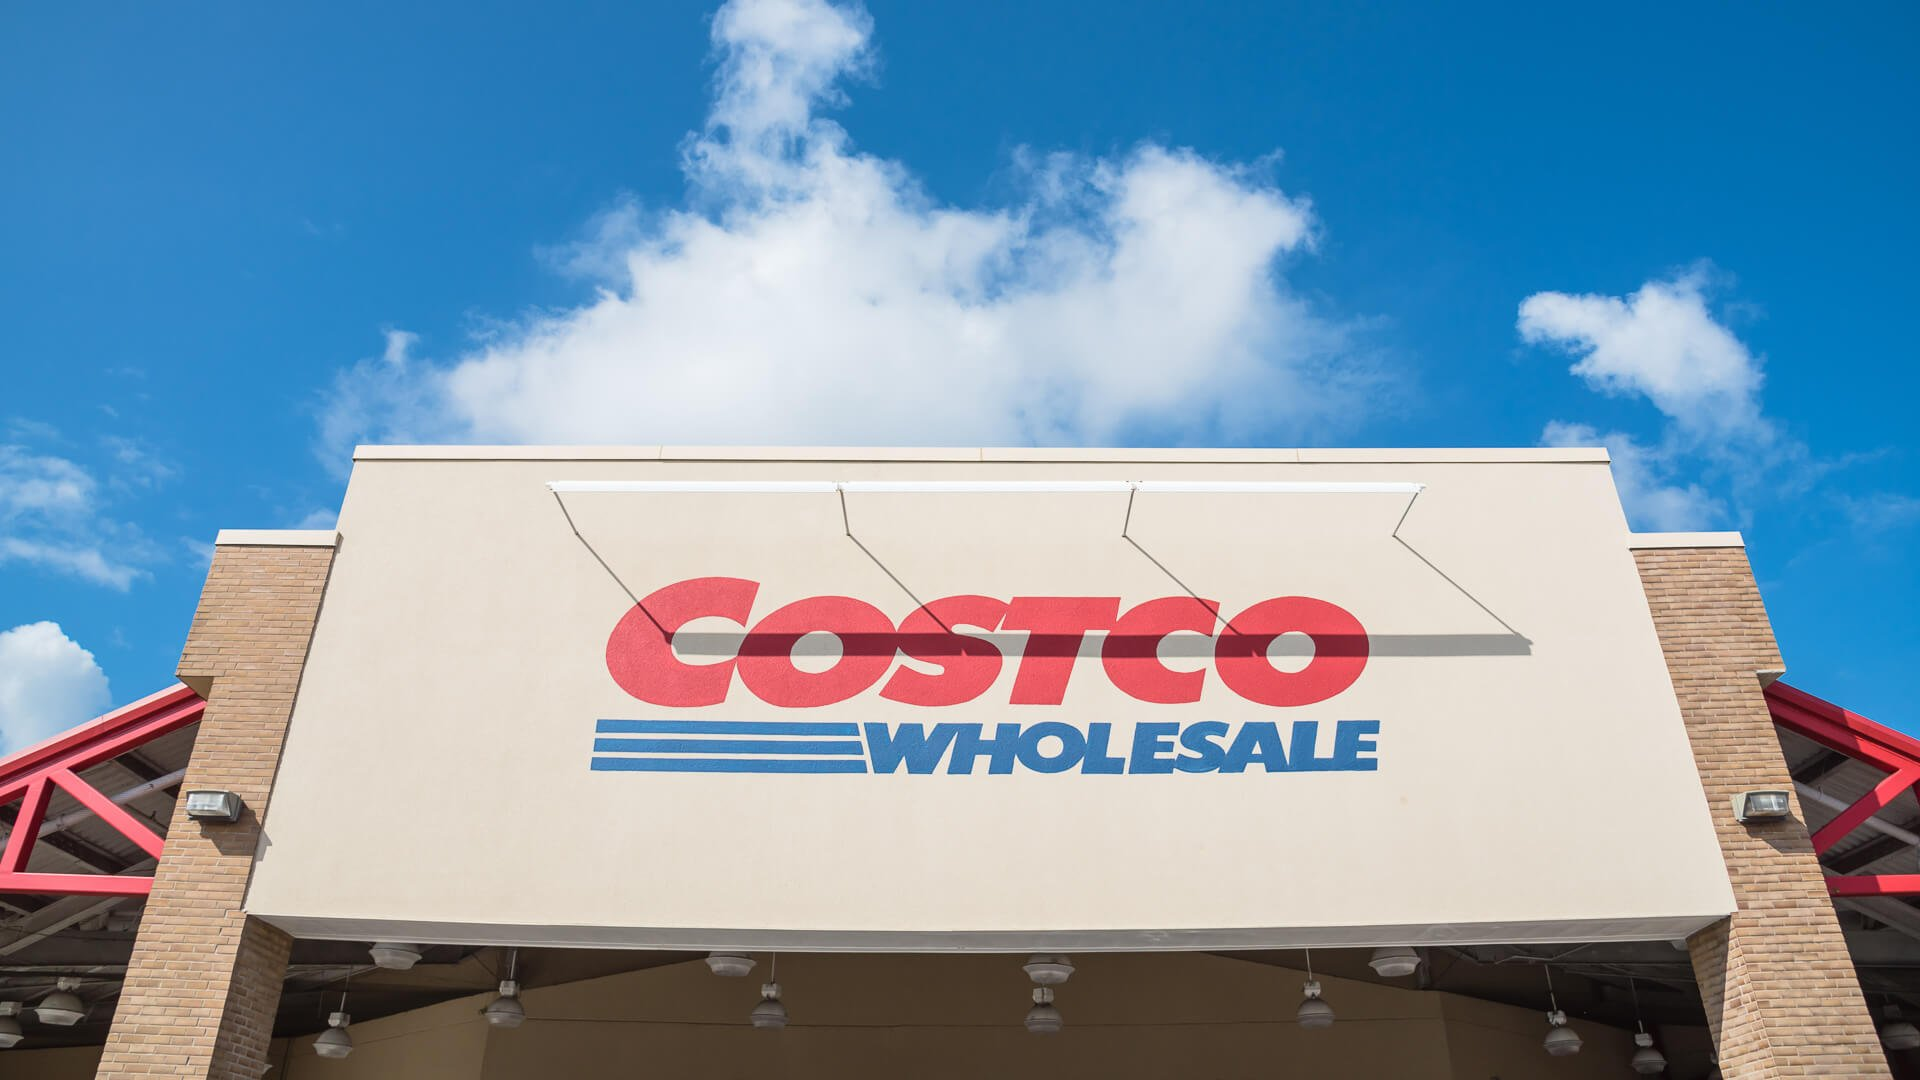 How To Order Checks From Costco